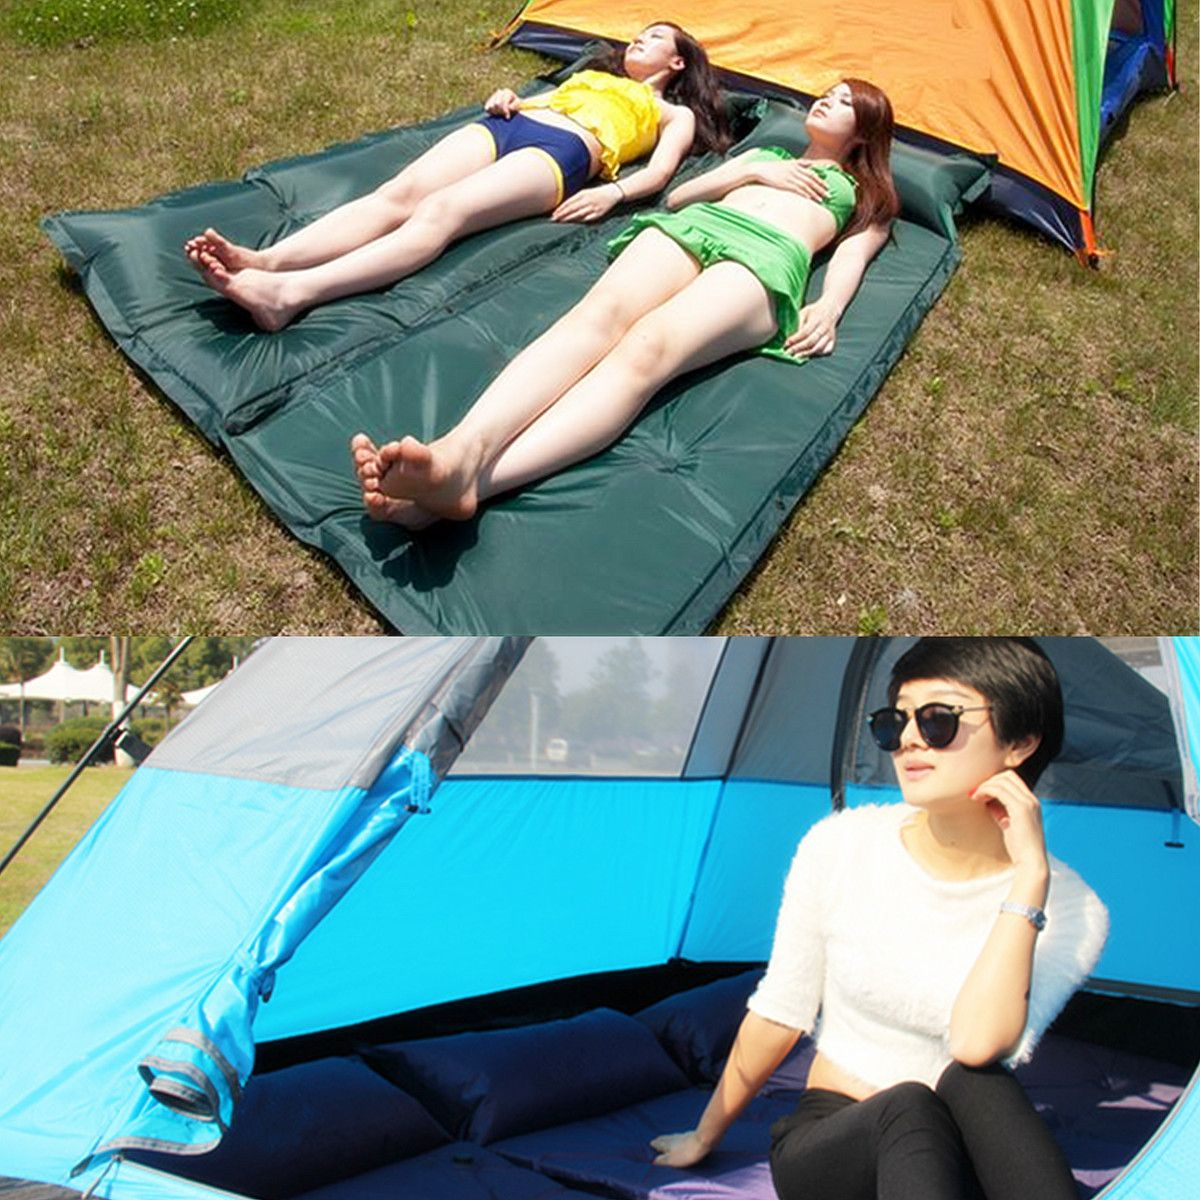 1pcs 2pcs Outdoor Camping Folding Self Inflating Inflatable Beds Air Cushion Beach Mat Mattress Hiking Sleeping Bags Inflatable Bed Sleeping In Bed